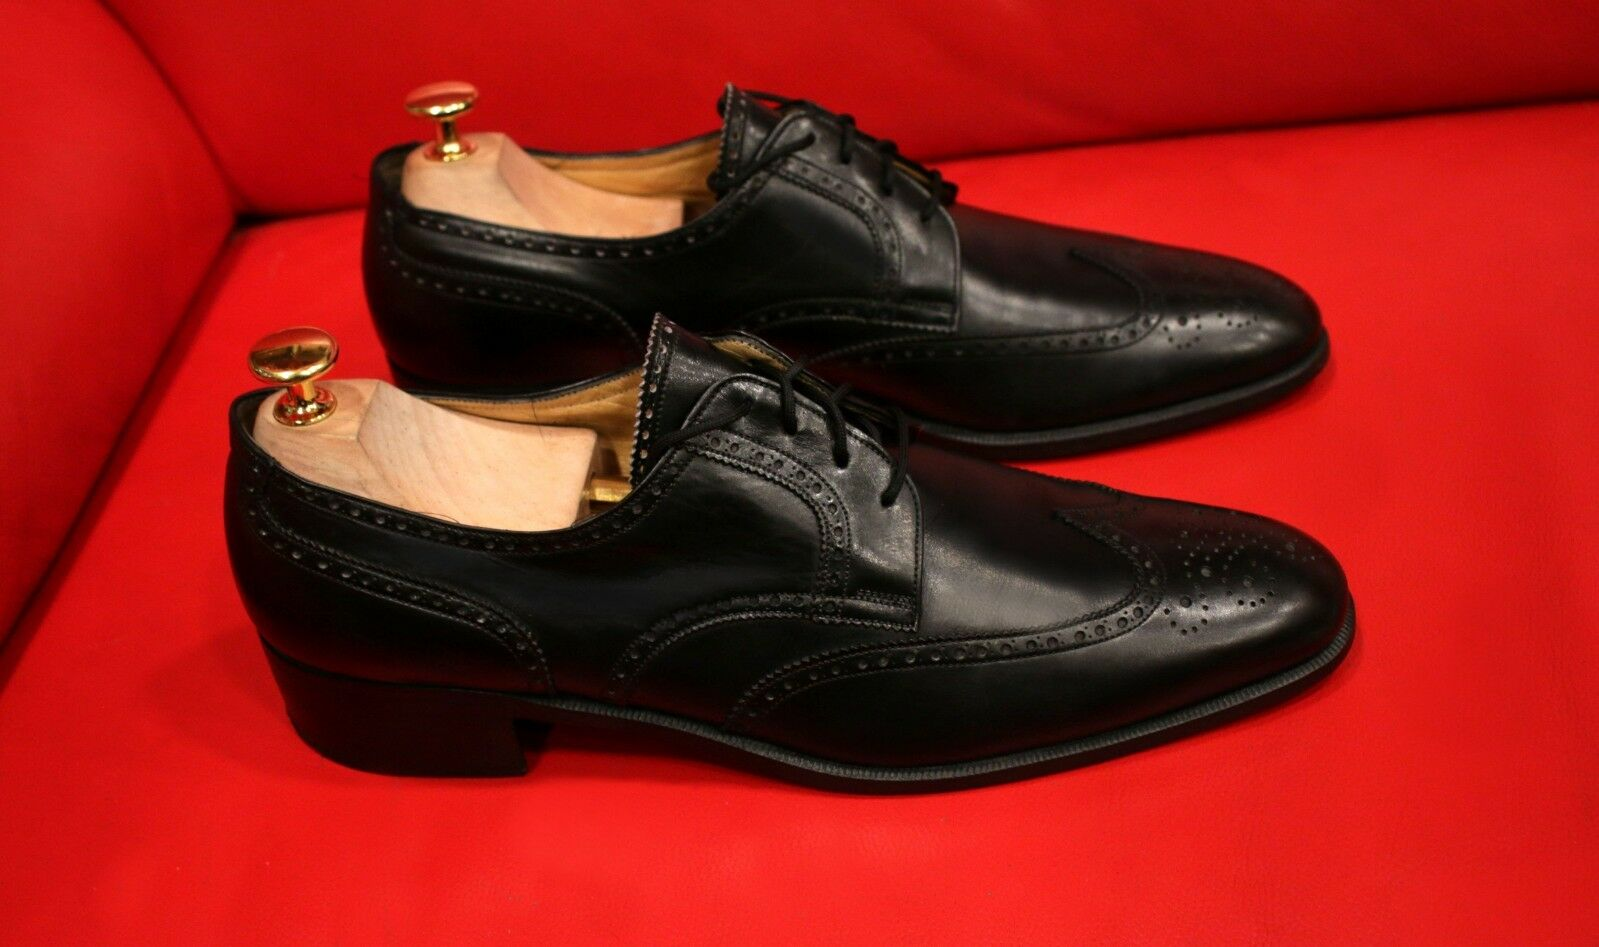 639.00 FERRAGAMO DONNE LUXURY nero EXCLUSIVE  OXFORD SHOHE Dimensione 9.5 B  connotazione di lusso low-key